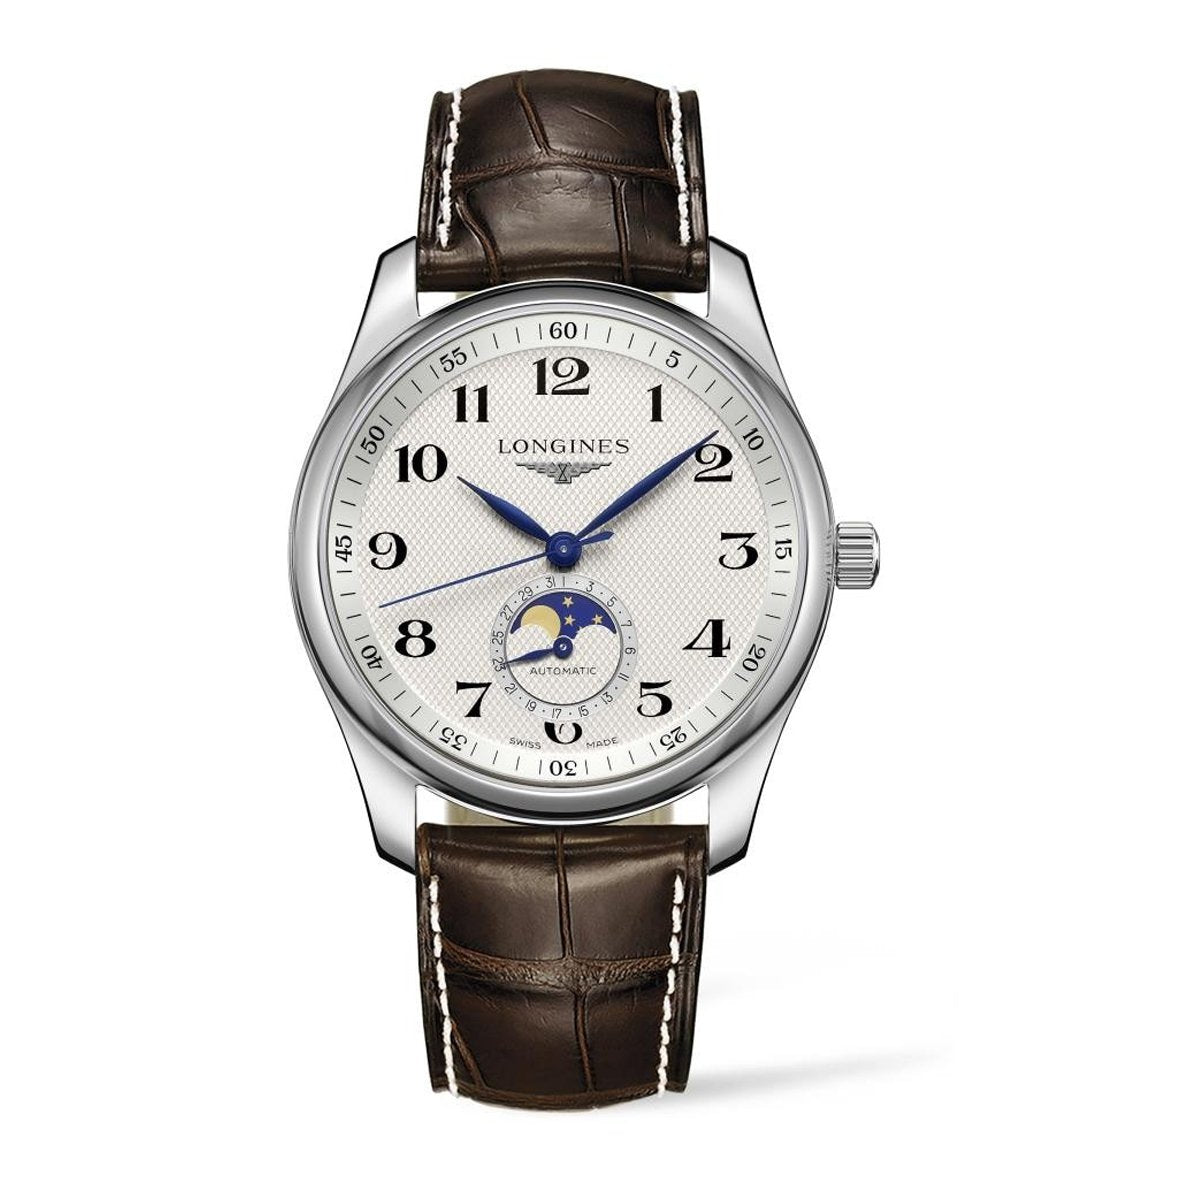 https://www.manfredijewels.com/collections/new-watches/products/the-longines-master-40mm-collection-silver-dial-moonphase-automatic